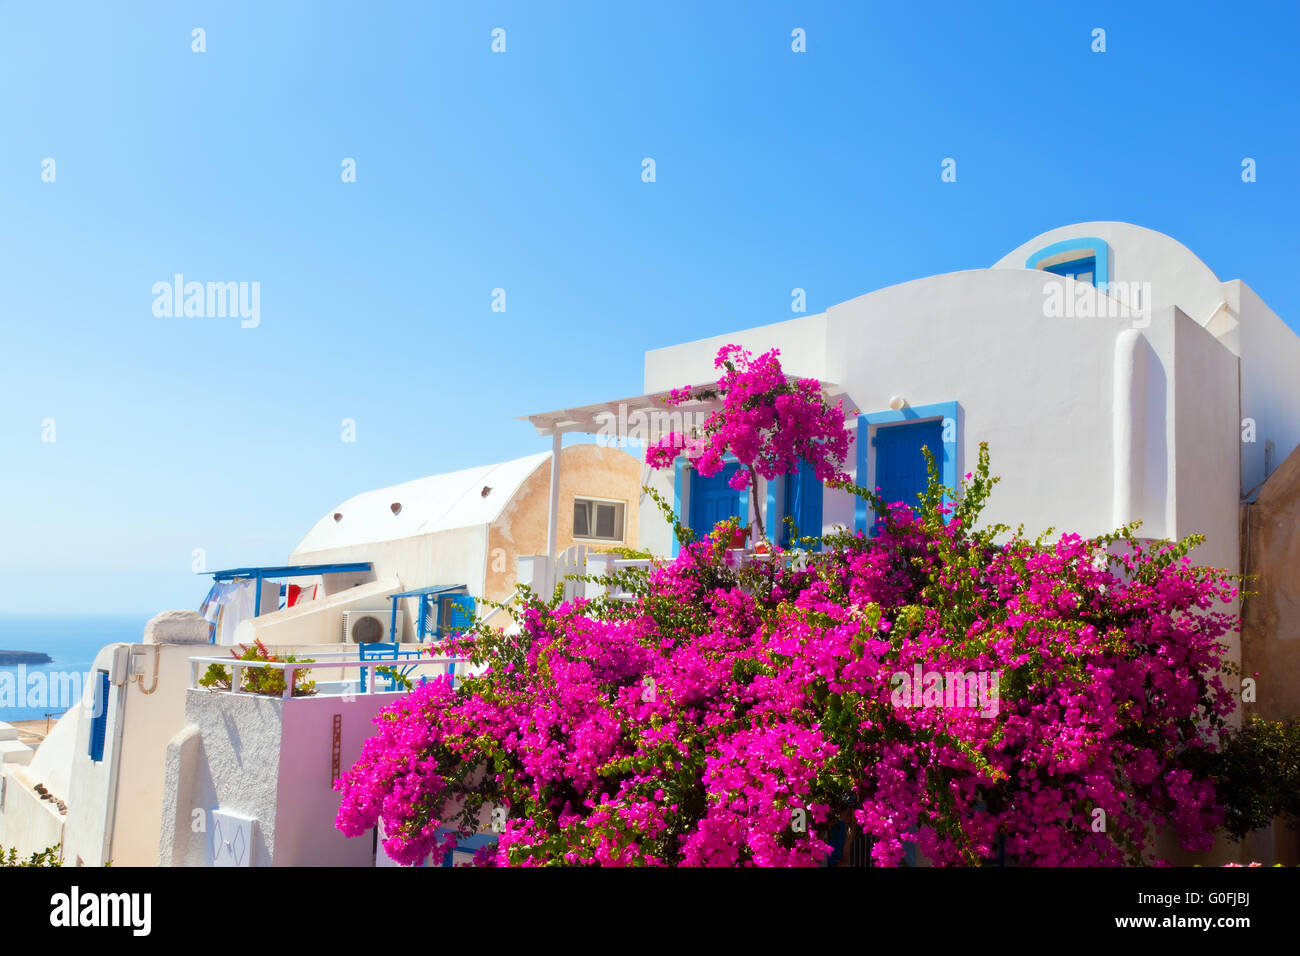 Traditional Greek House traditional greek house with blue door and windows. pink flowers